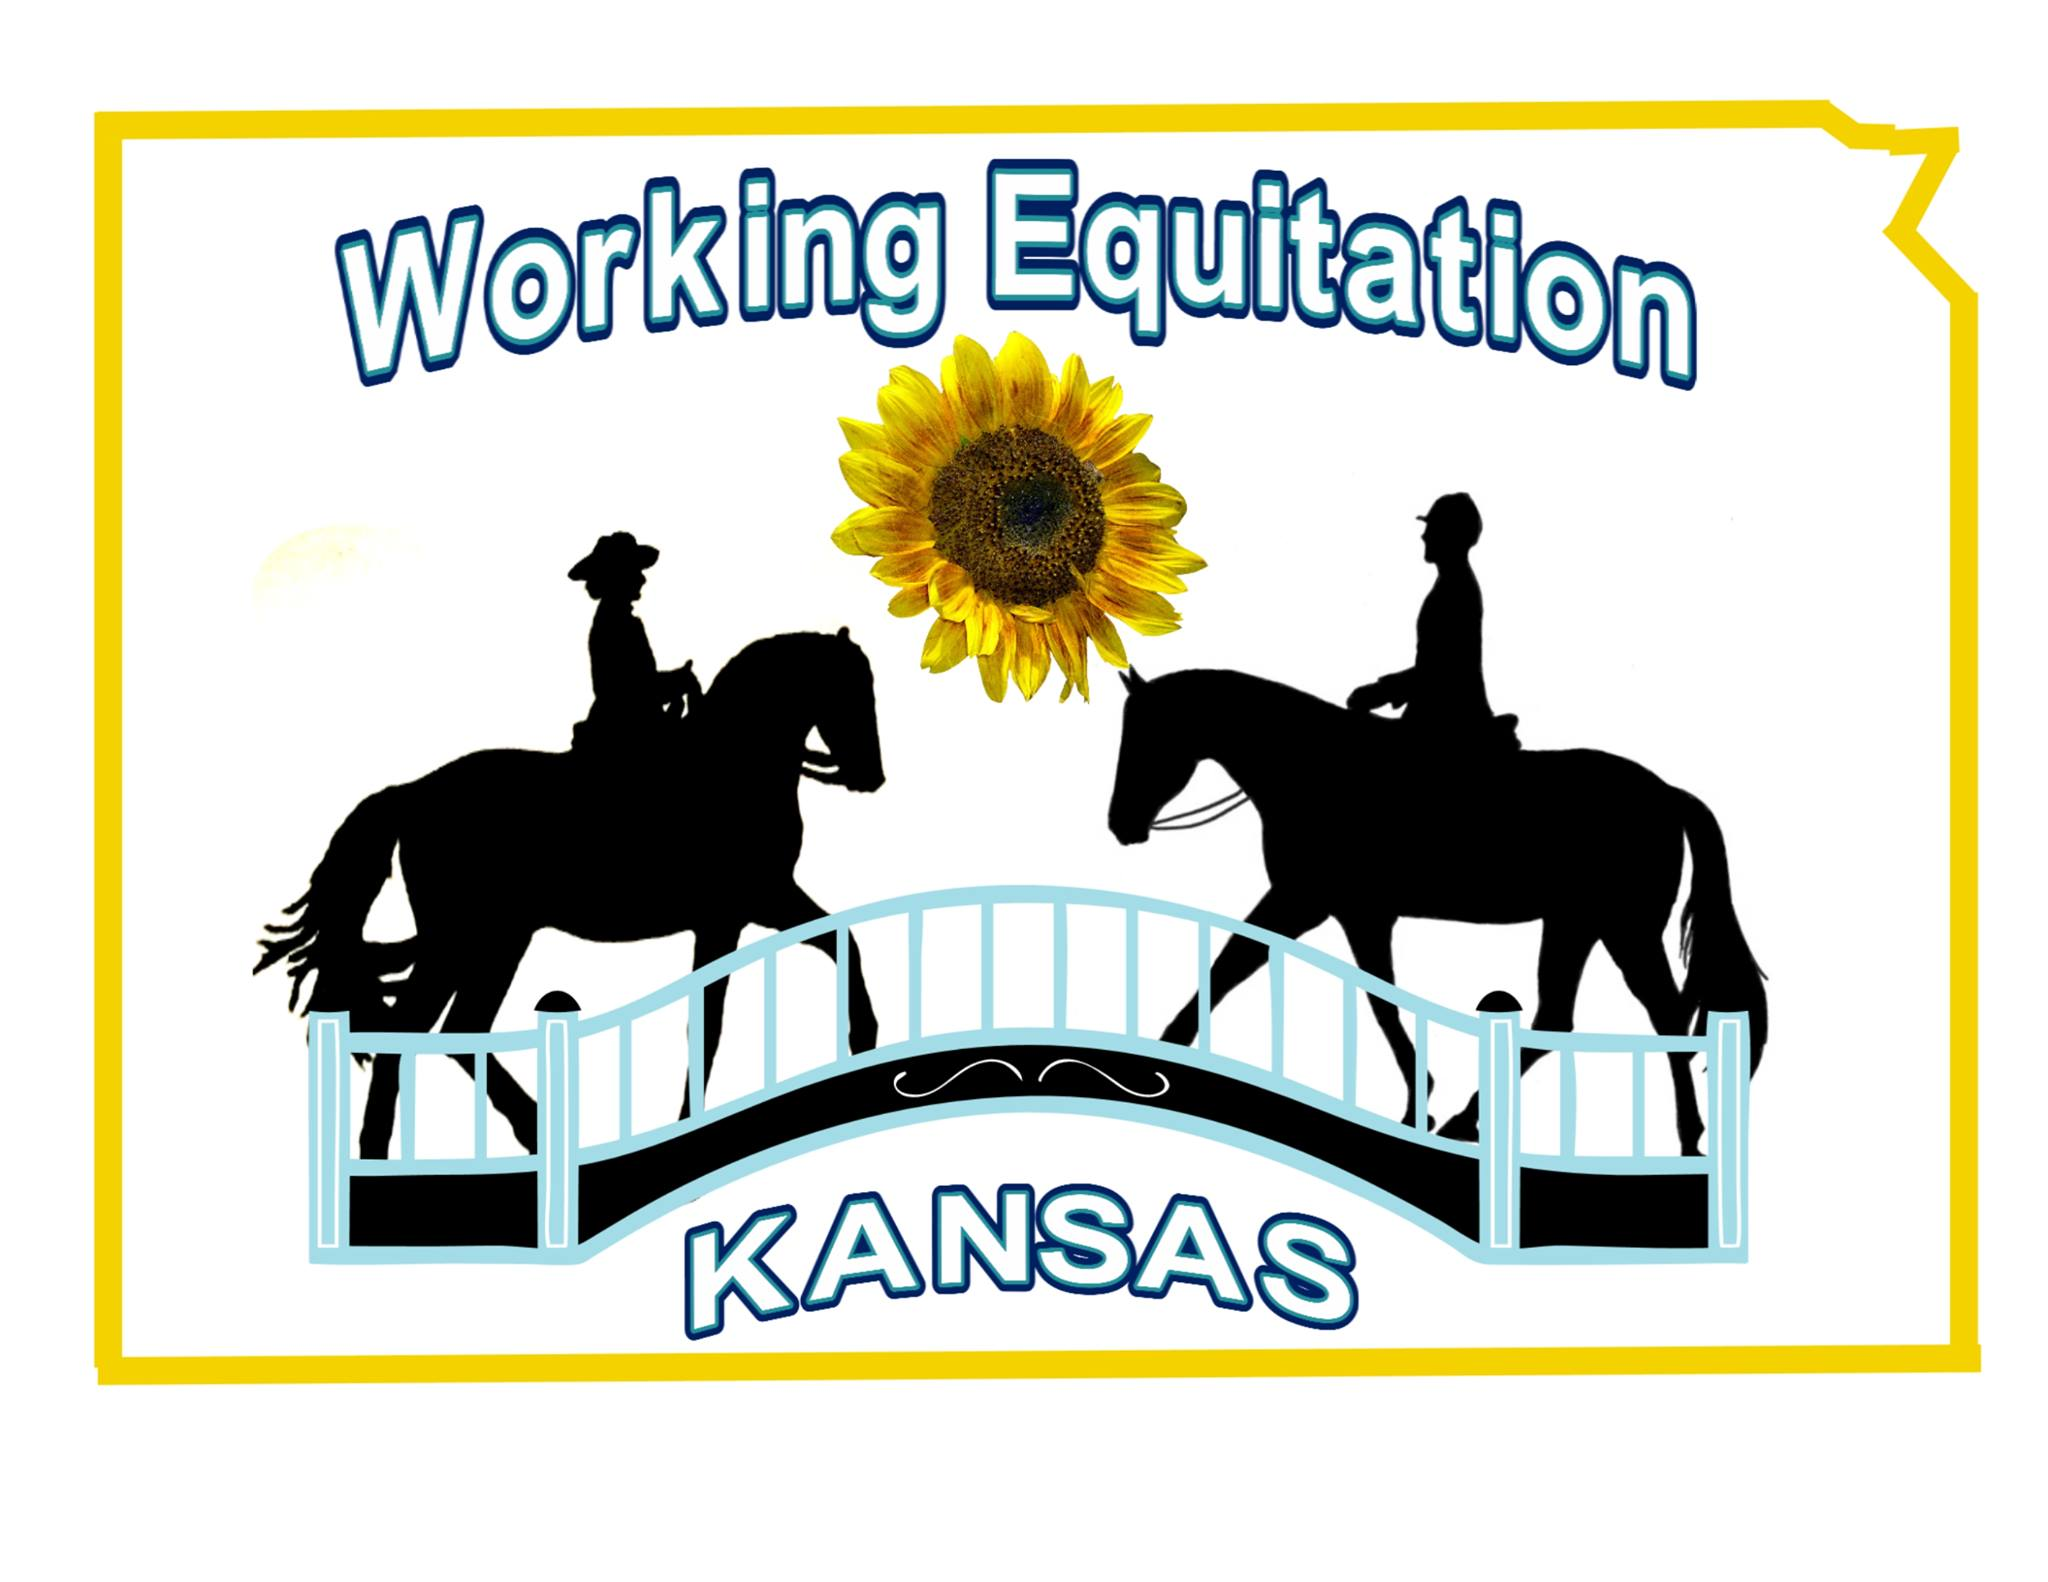 """Working Equitation Kansas  - Kate Fowler - """"Working Equitation Of Kansas is proud to be a bronze sponsor for the Confederation National show. Wishing riders the best ride, smooth EOH and fast times!!! Enjoy!!! """""""